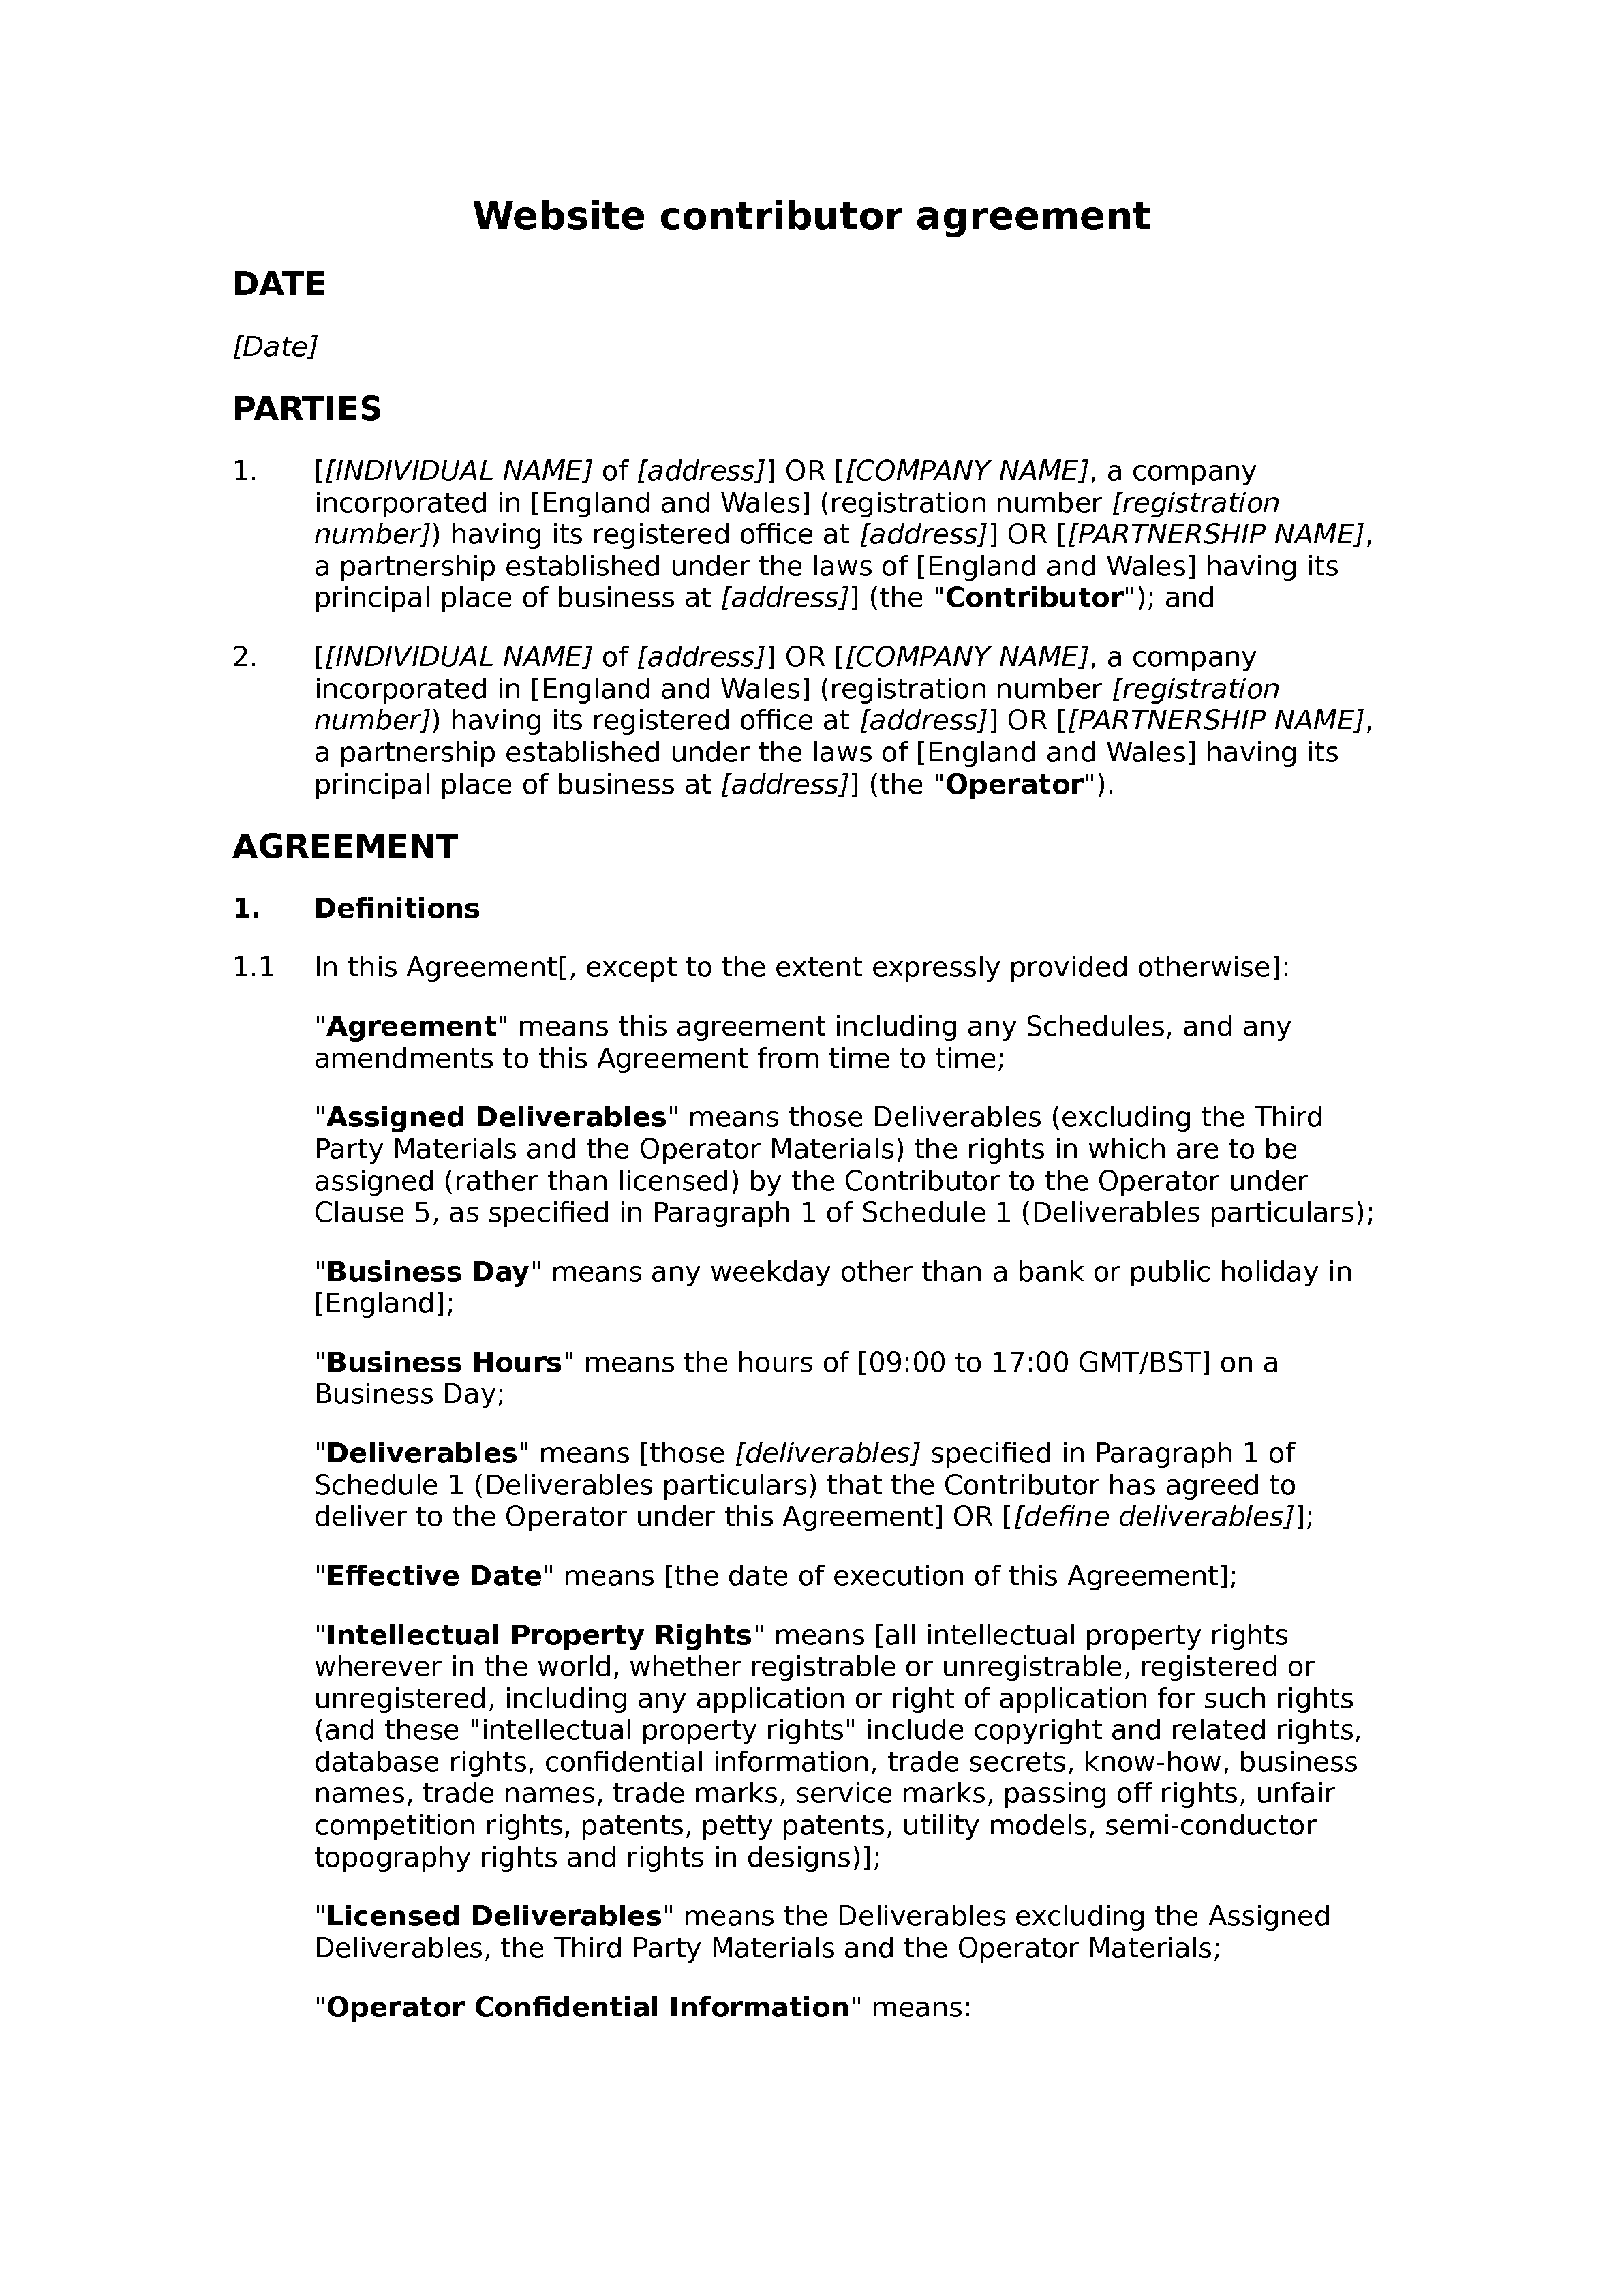 Website contributor agreement (unpaid) document preview